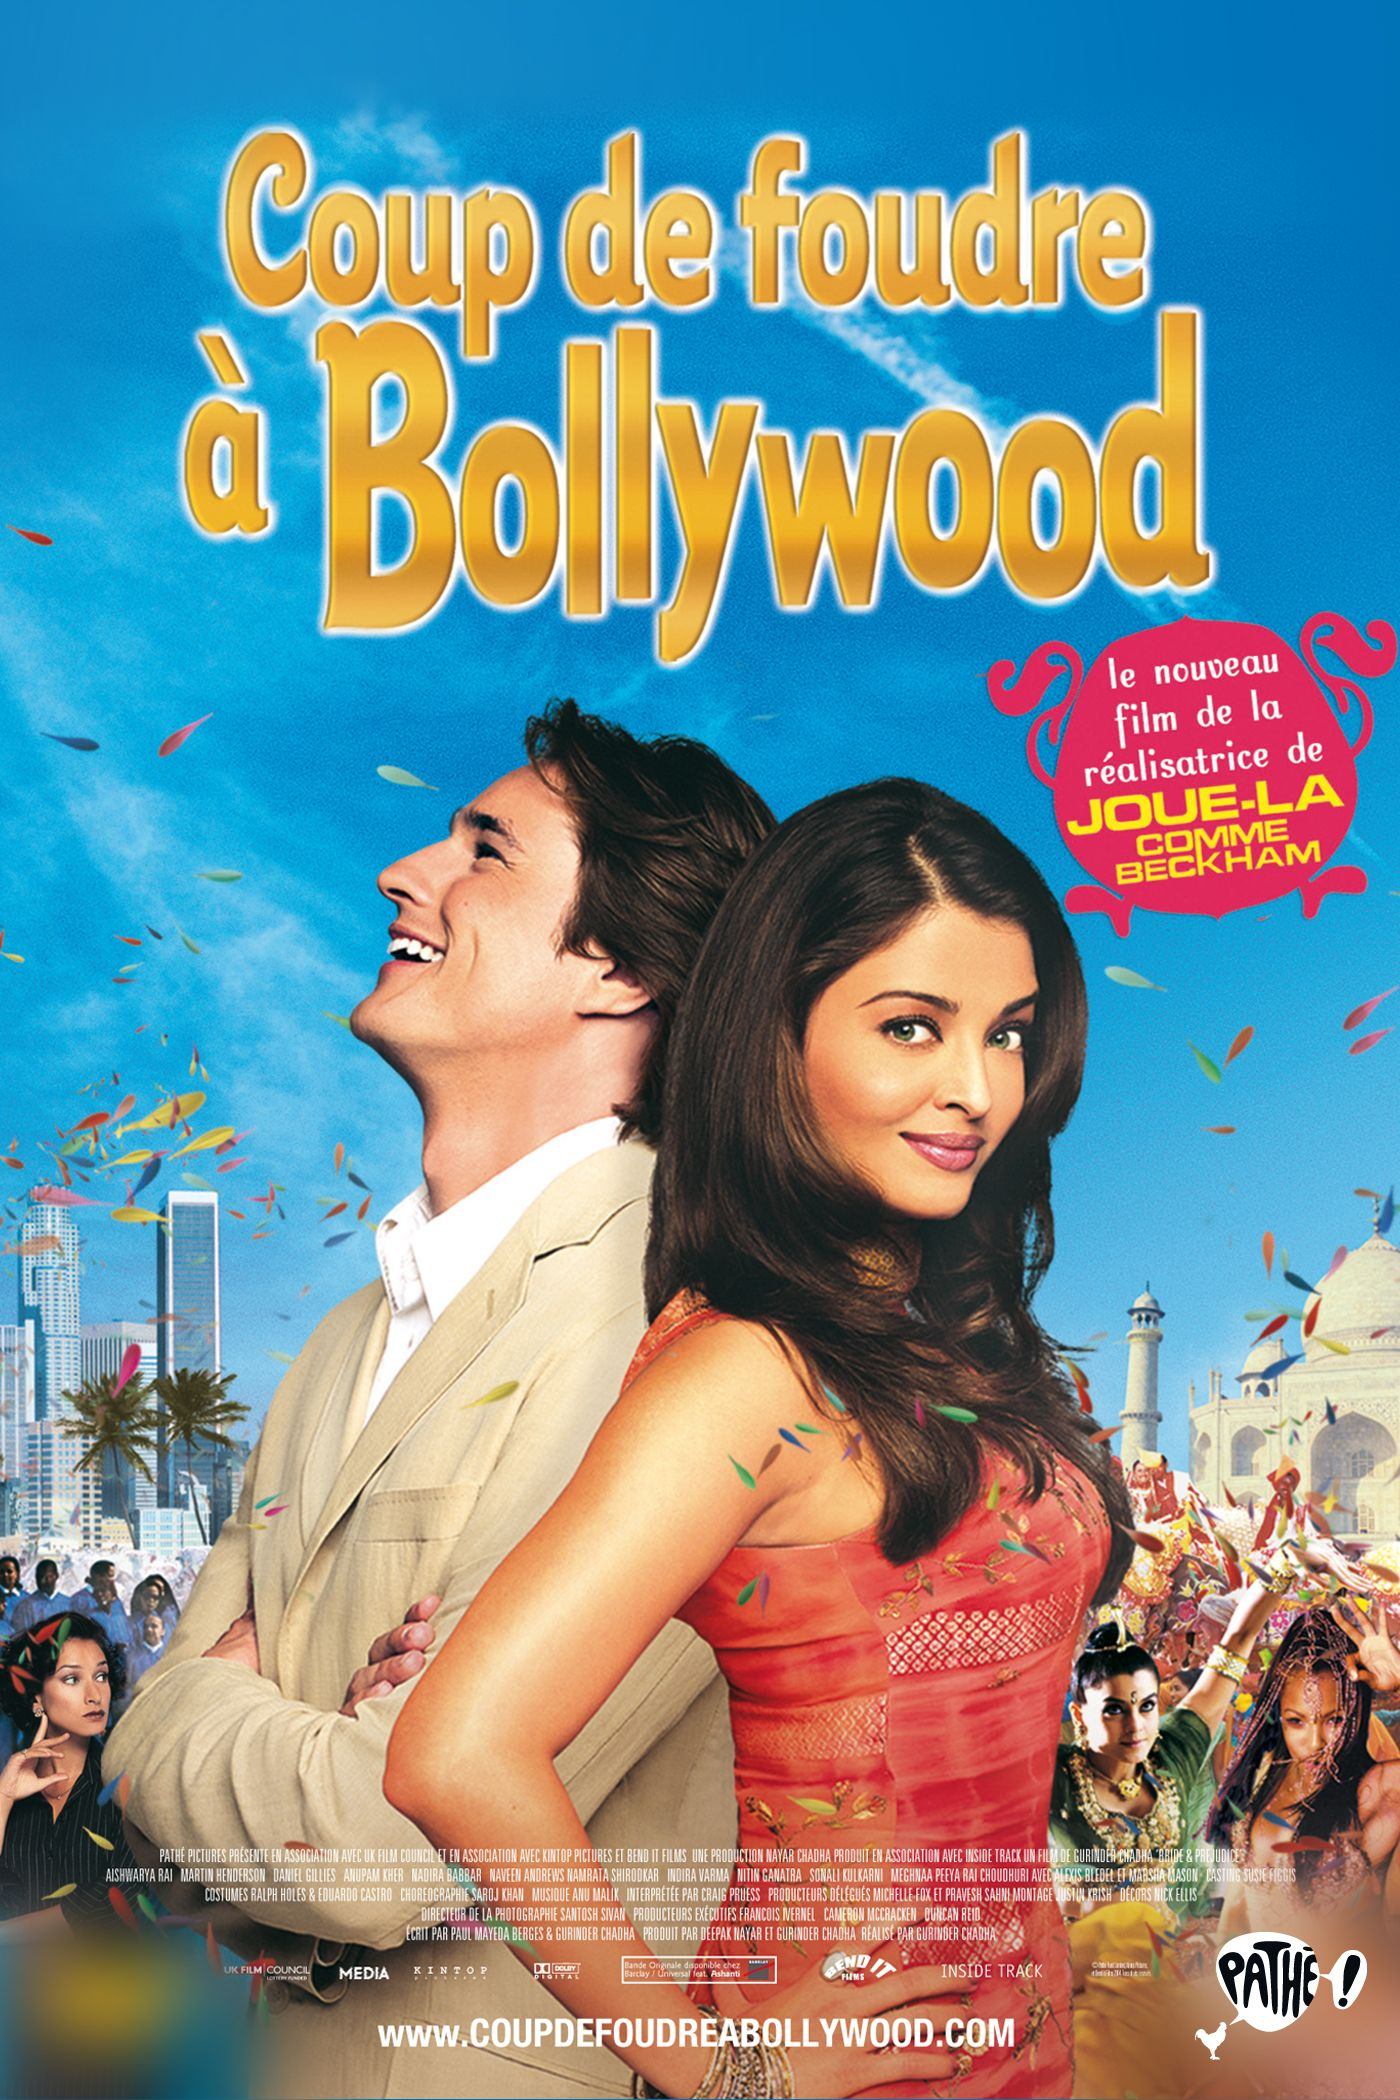 Film coup de foudre bollywood 2004 en streaming cin ma - Coup de foudre a notting hill streaming vf ...